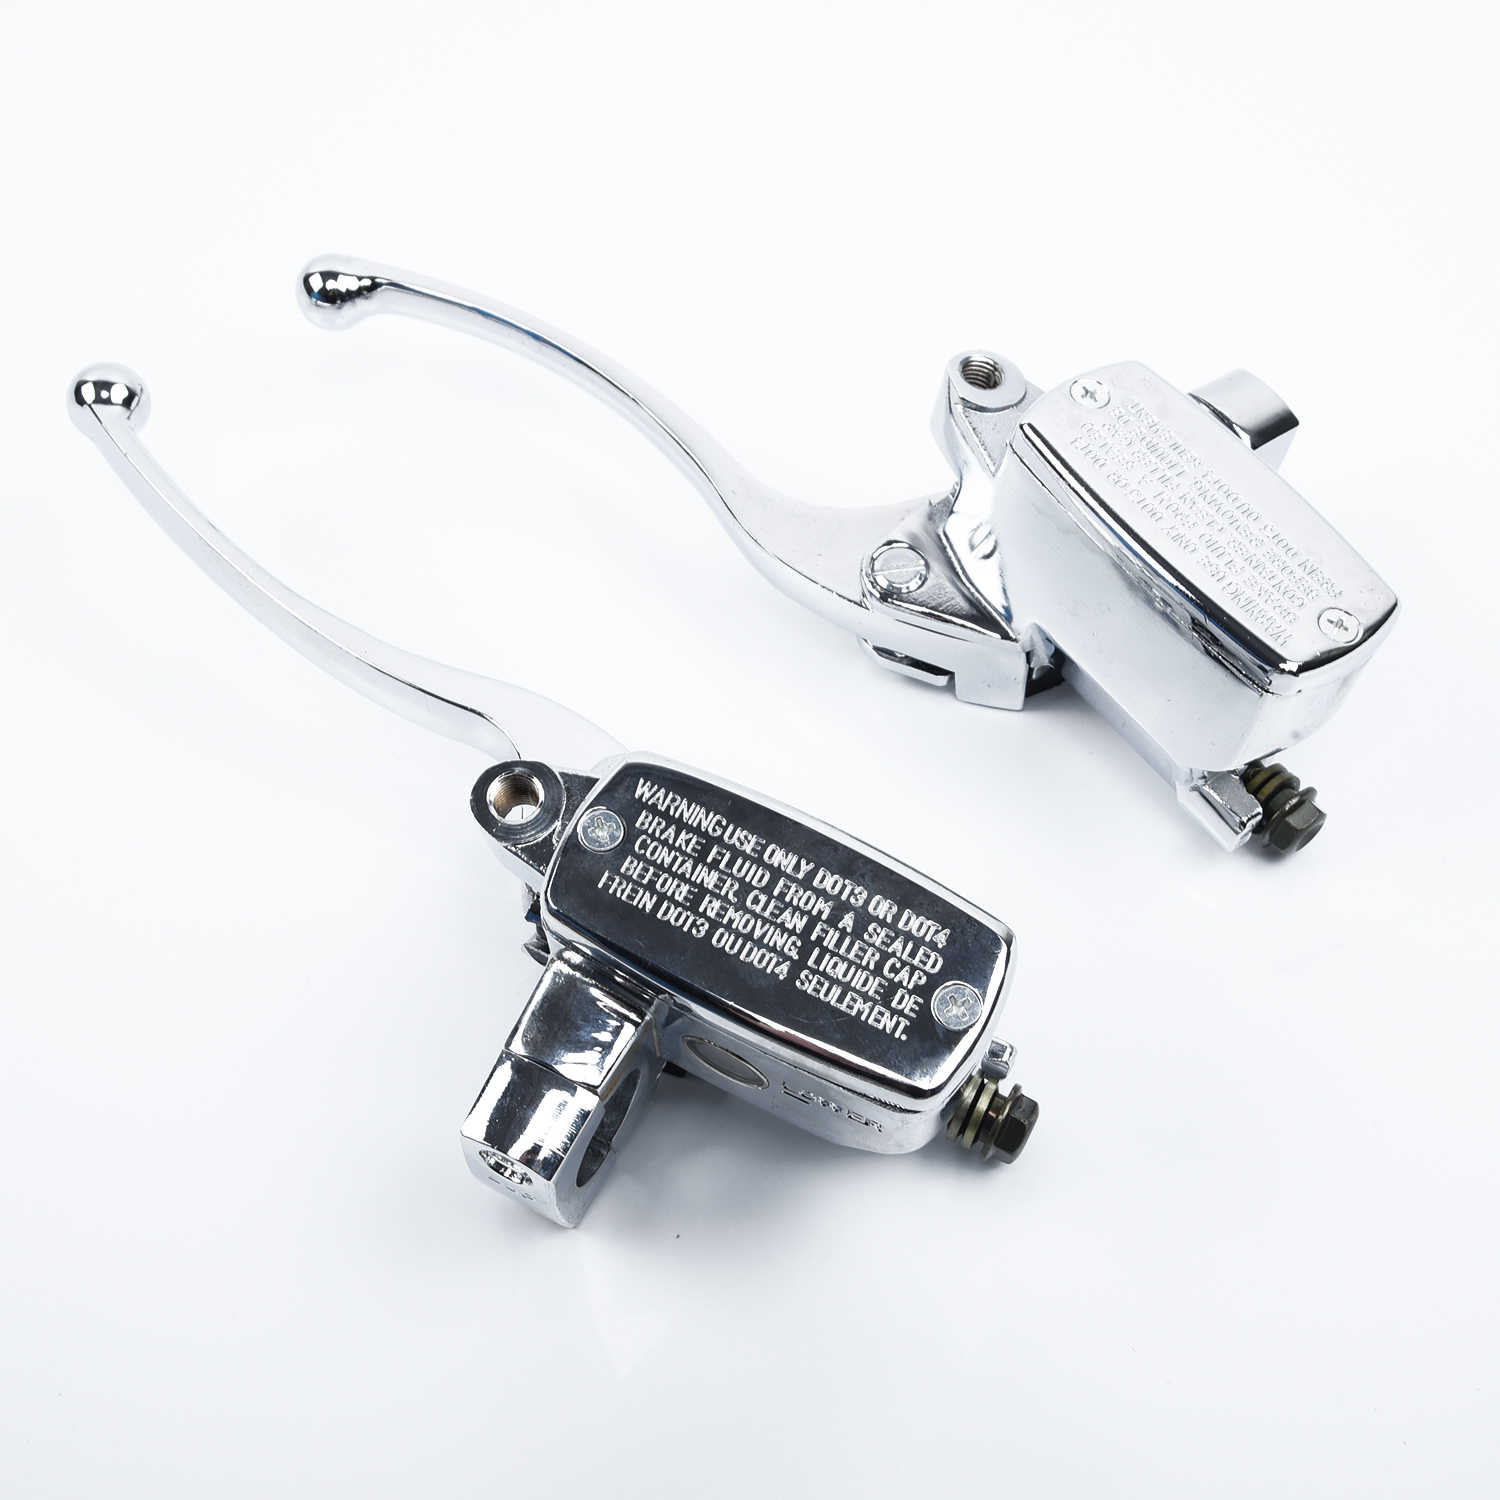 One pair of Chrome Brake Master Cylinder Clutch Levers high quality  suitable For Suzuki Intruder 800/ 1400 / 1500